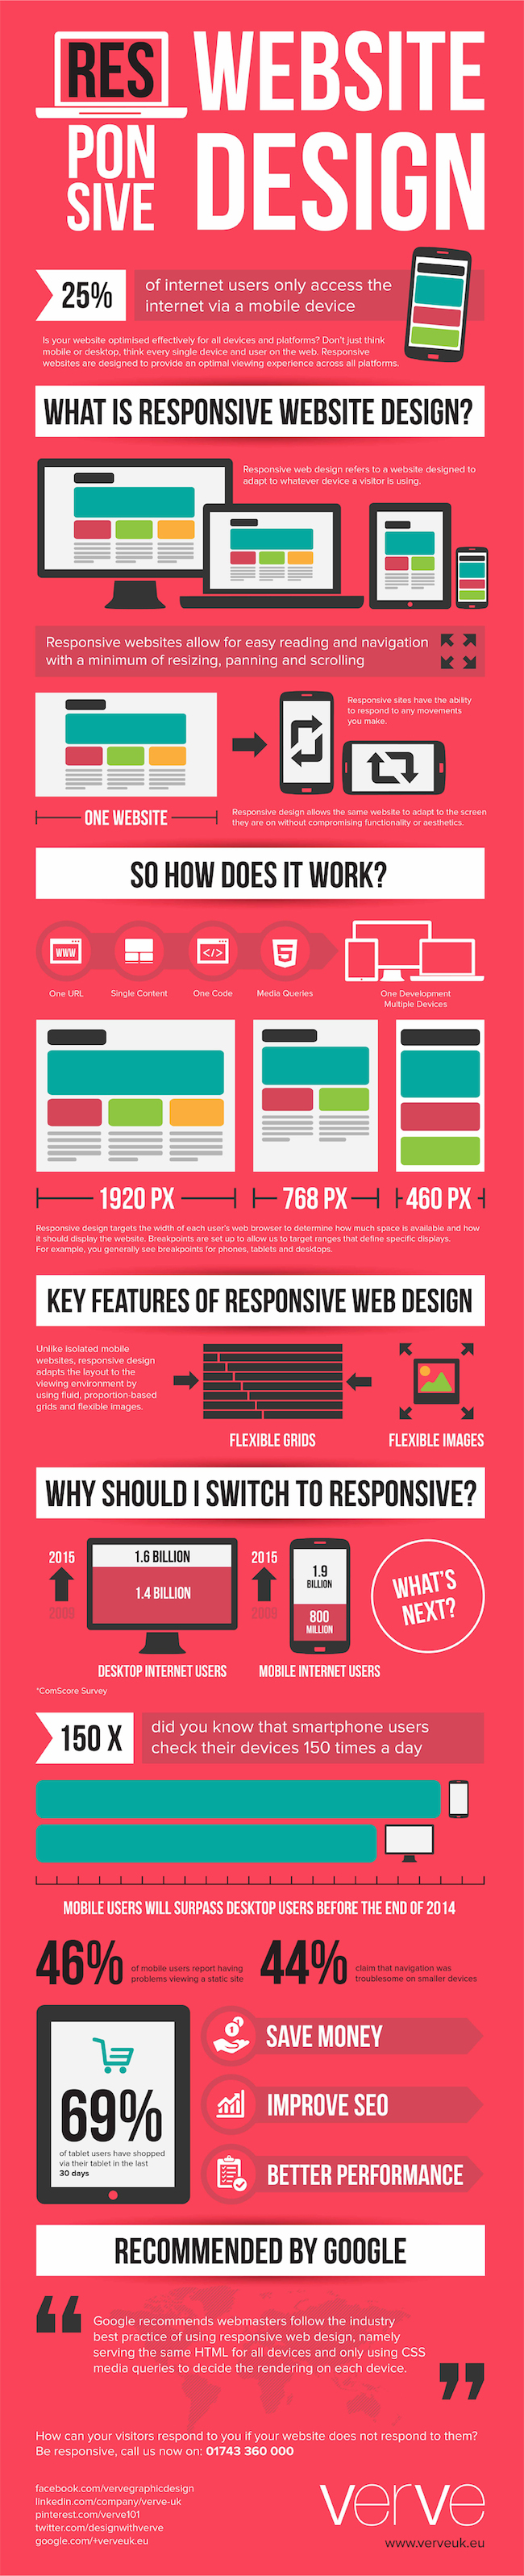 How Responsive Web Design Works [Infographic]